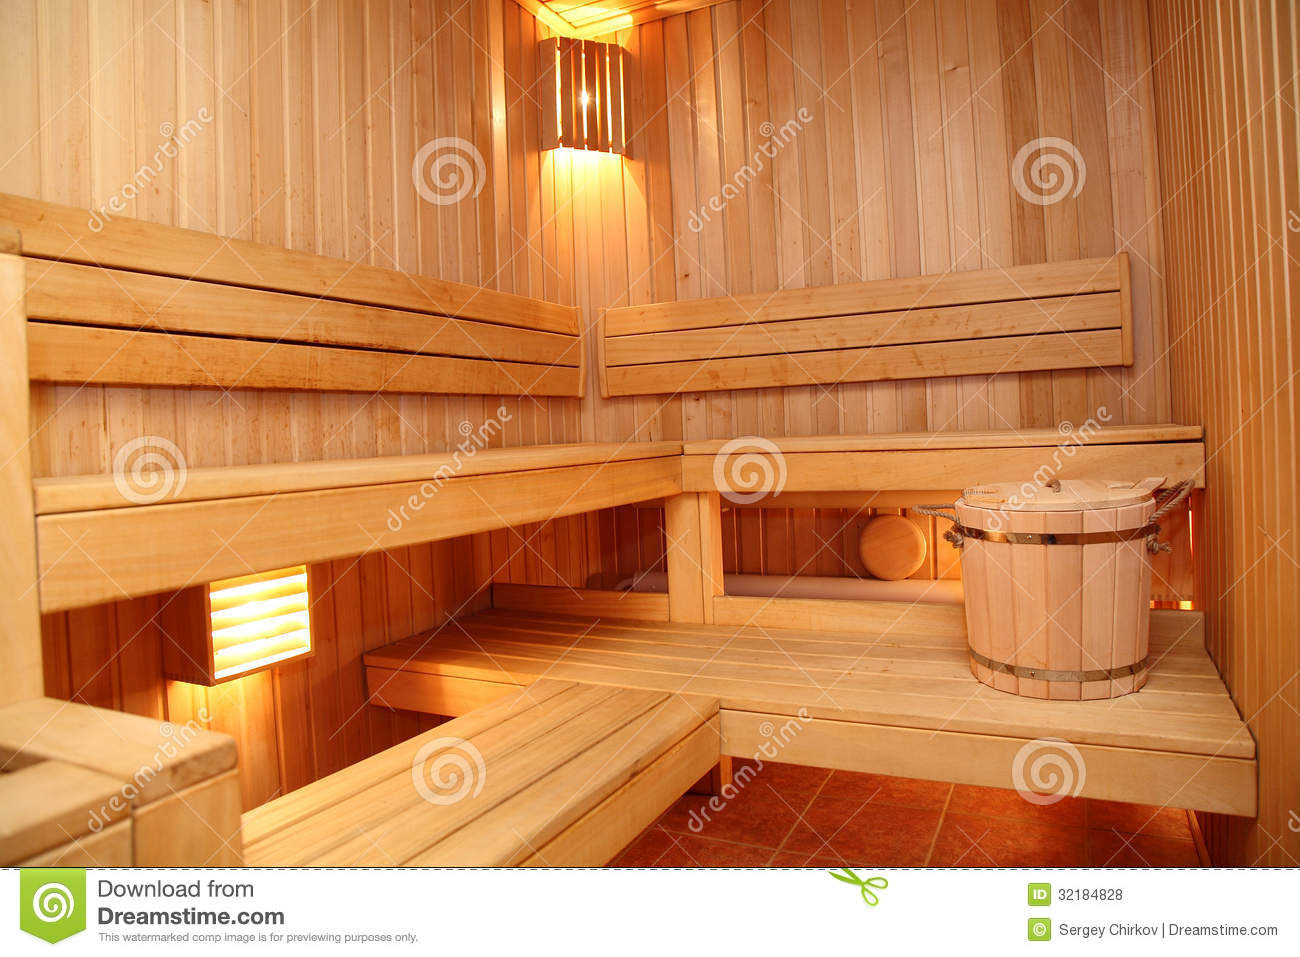 Small Wooden Sauna Royalty Free Stock Photos Image 32184828